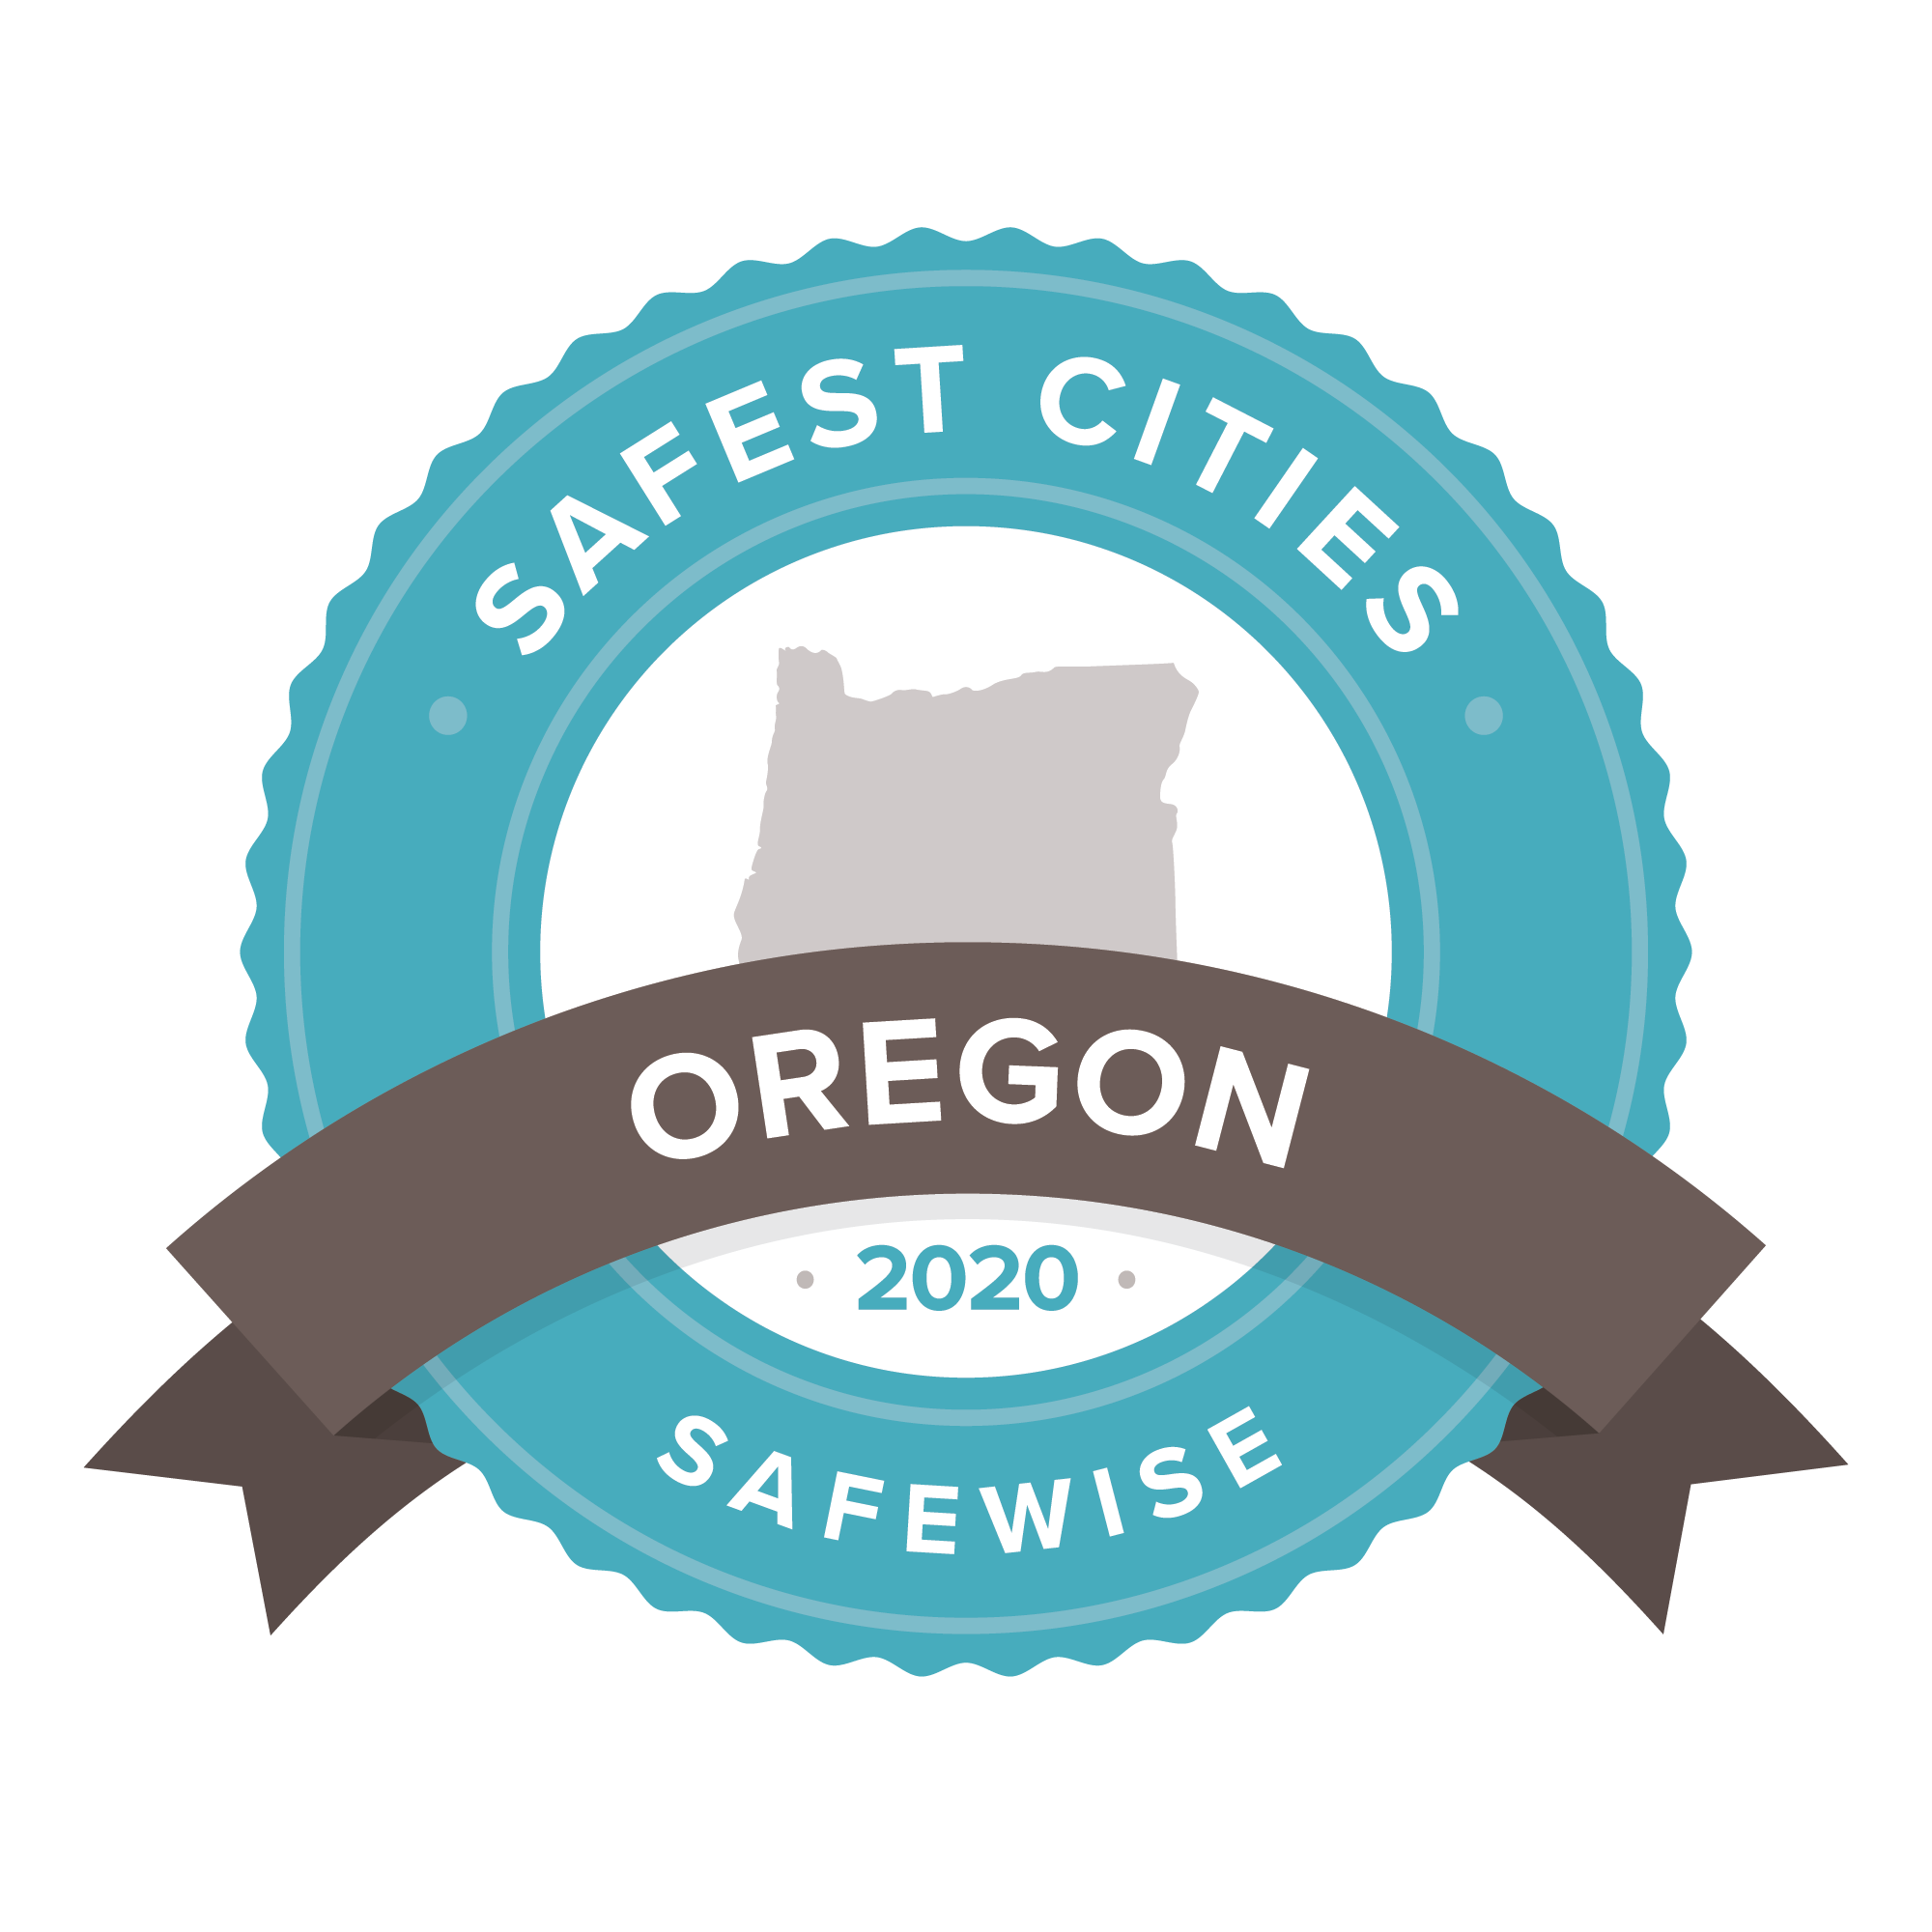 Safest Cities Oregon badge